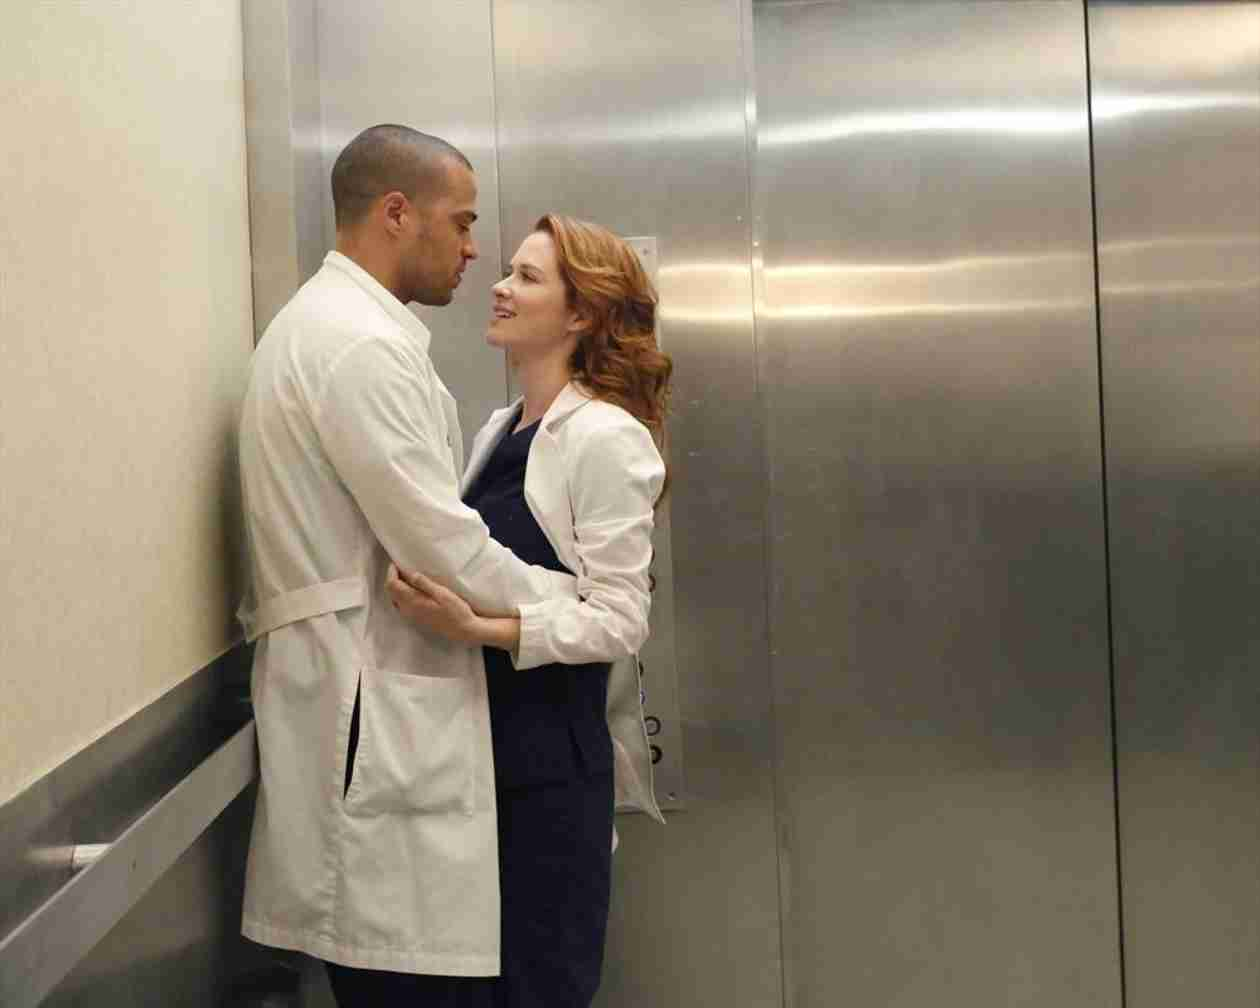 Grey's Anatomy Season 10, Episode 18 Spoilers: 5 Things We Learn From the Sneak Peeks